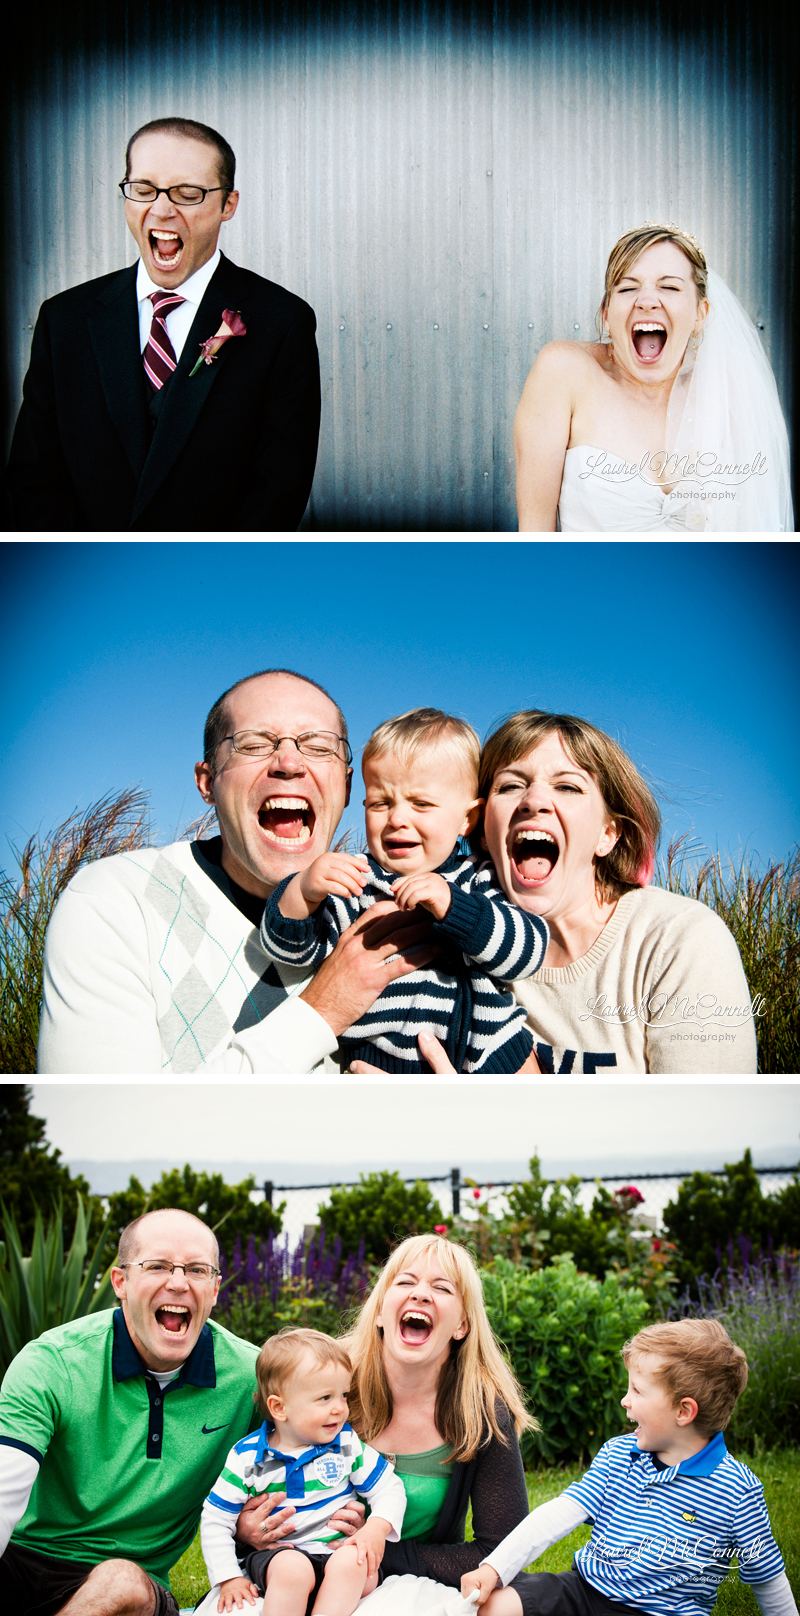 Trio of images of couple from their wedding through having children photographed in Seattle, Washington by Laurel McConnell Photography.